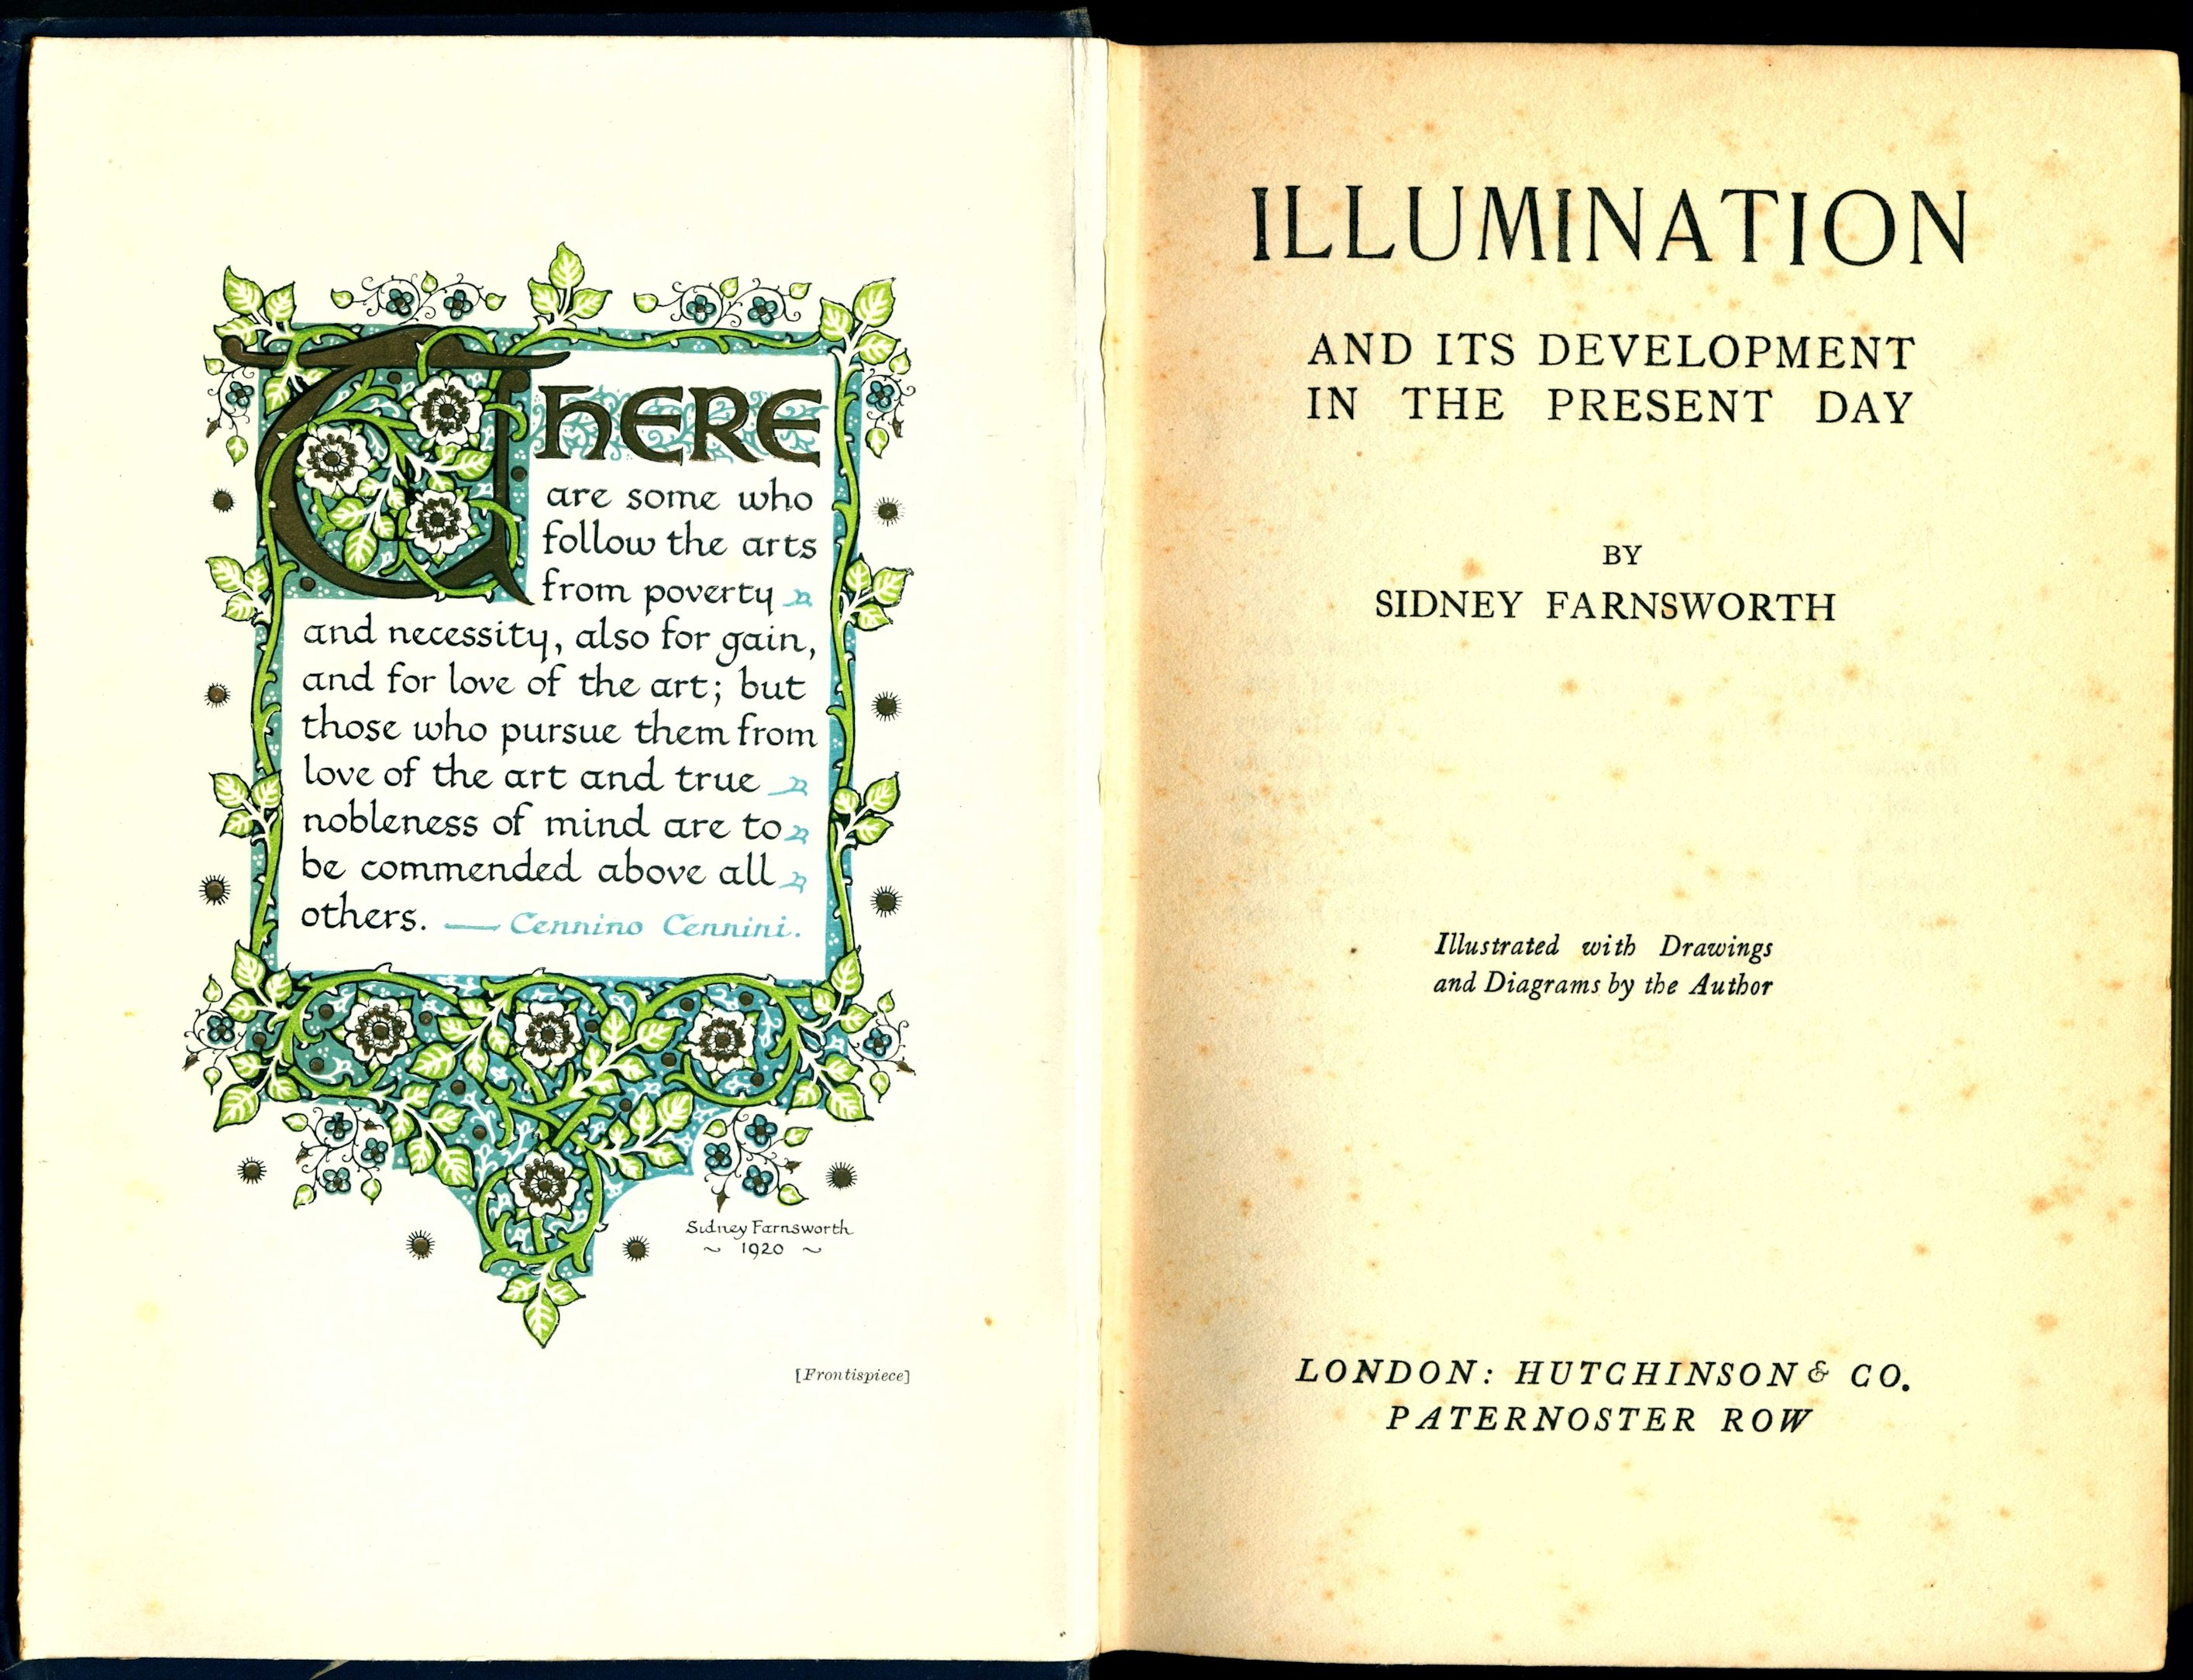 Sidney Farnsworth. Illumination and its development in the present day. London: Hutchinson, 1922.